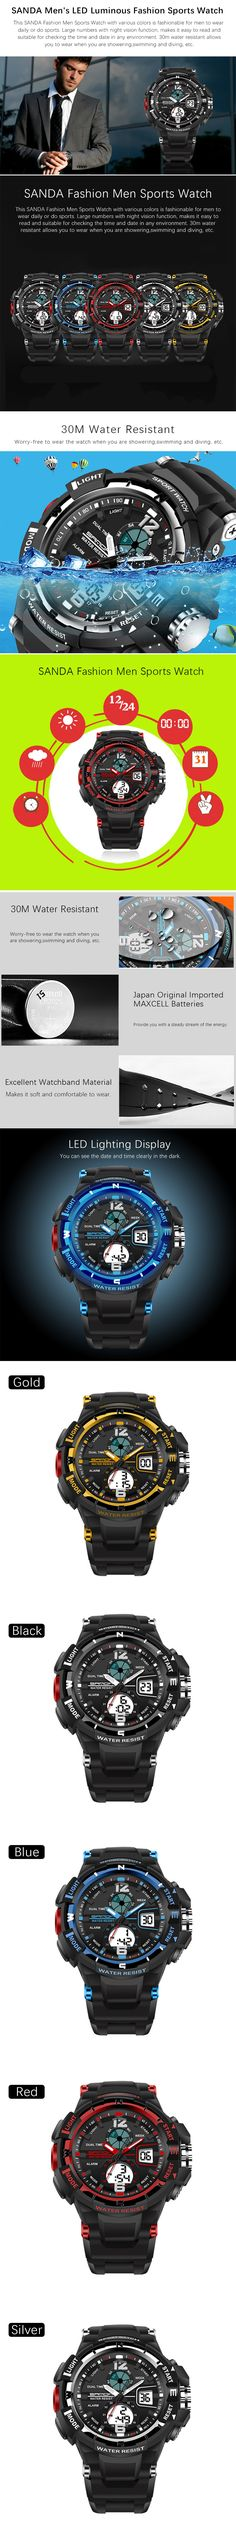 A fashion sports watch for men to wear daily or while doing sports.